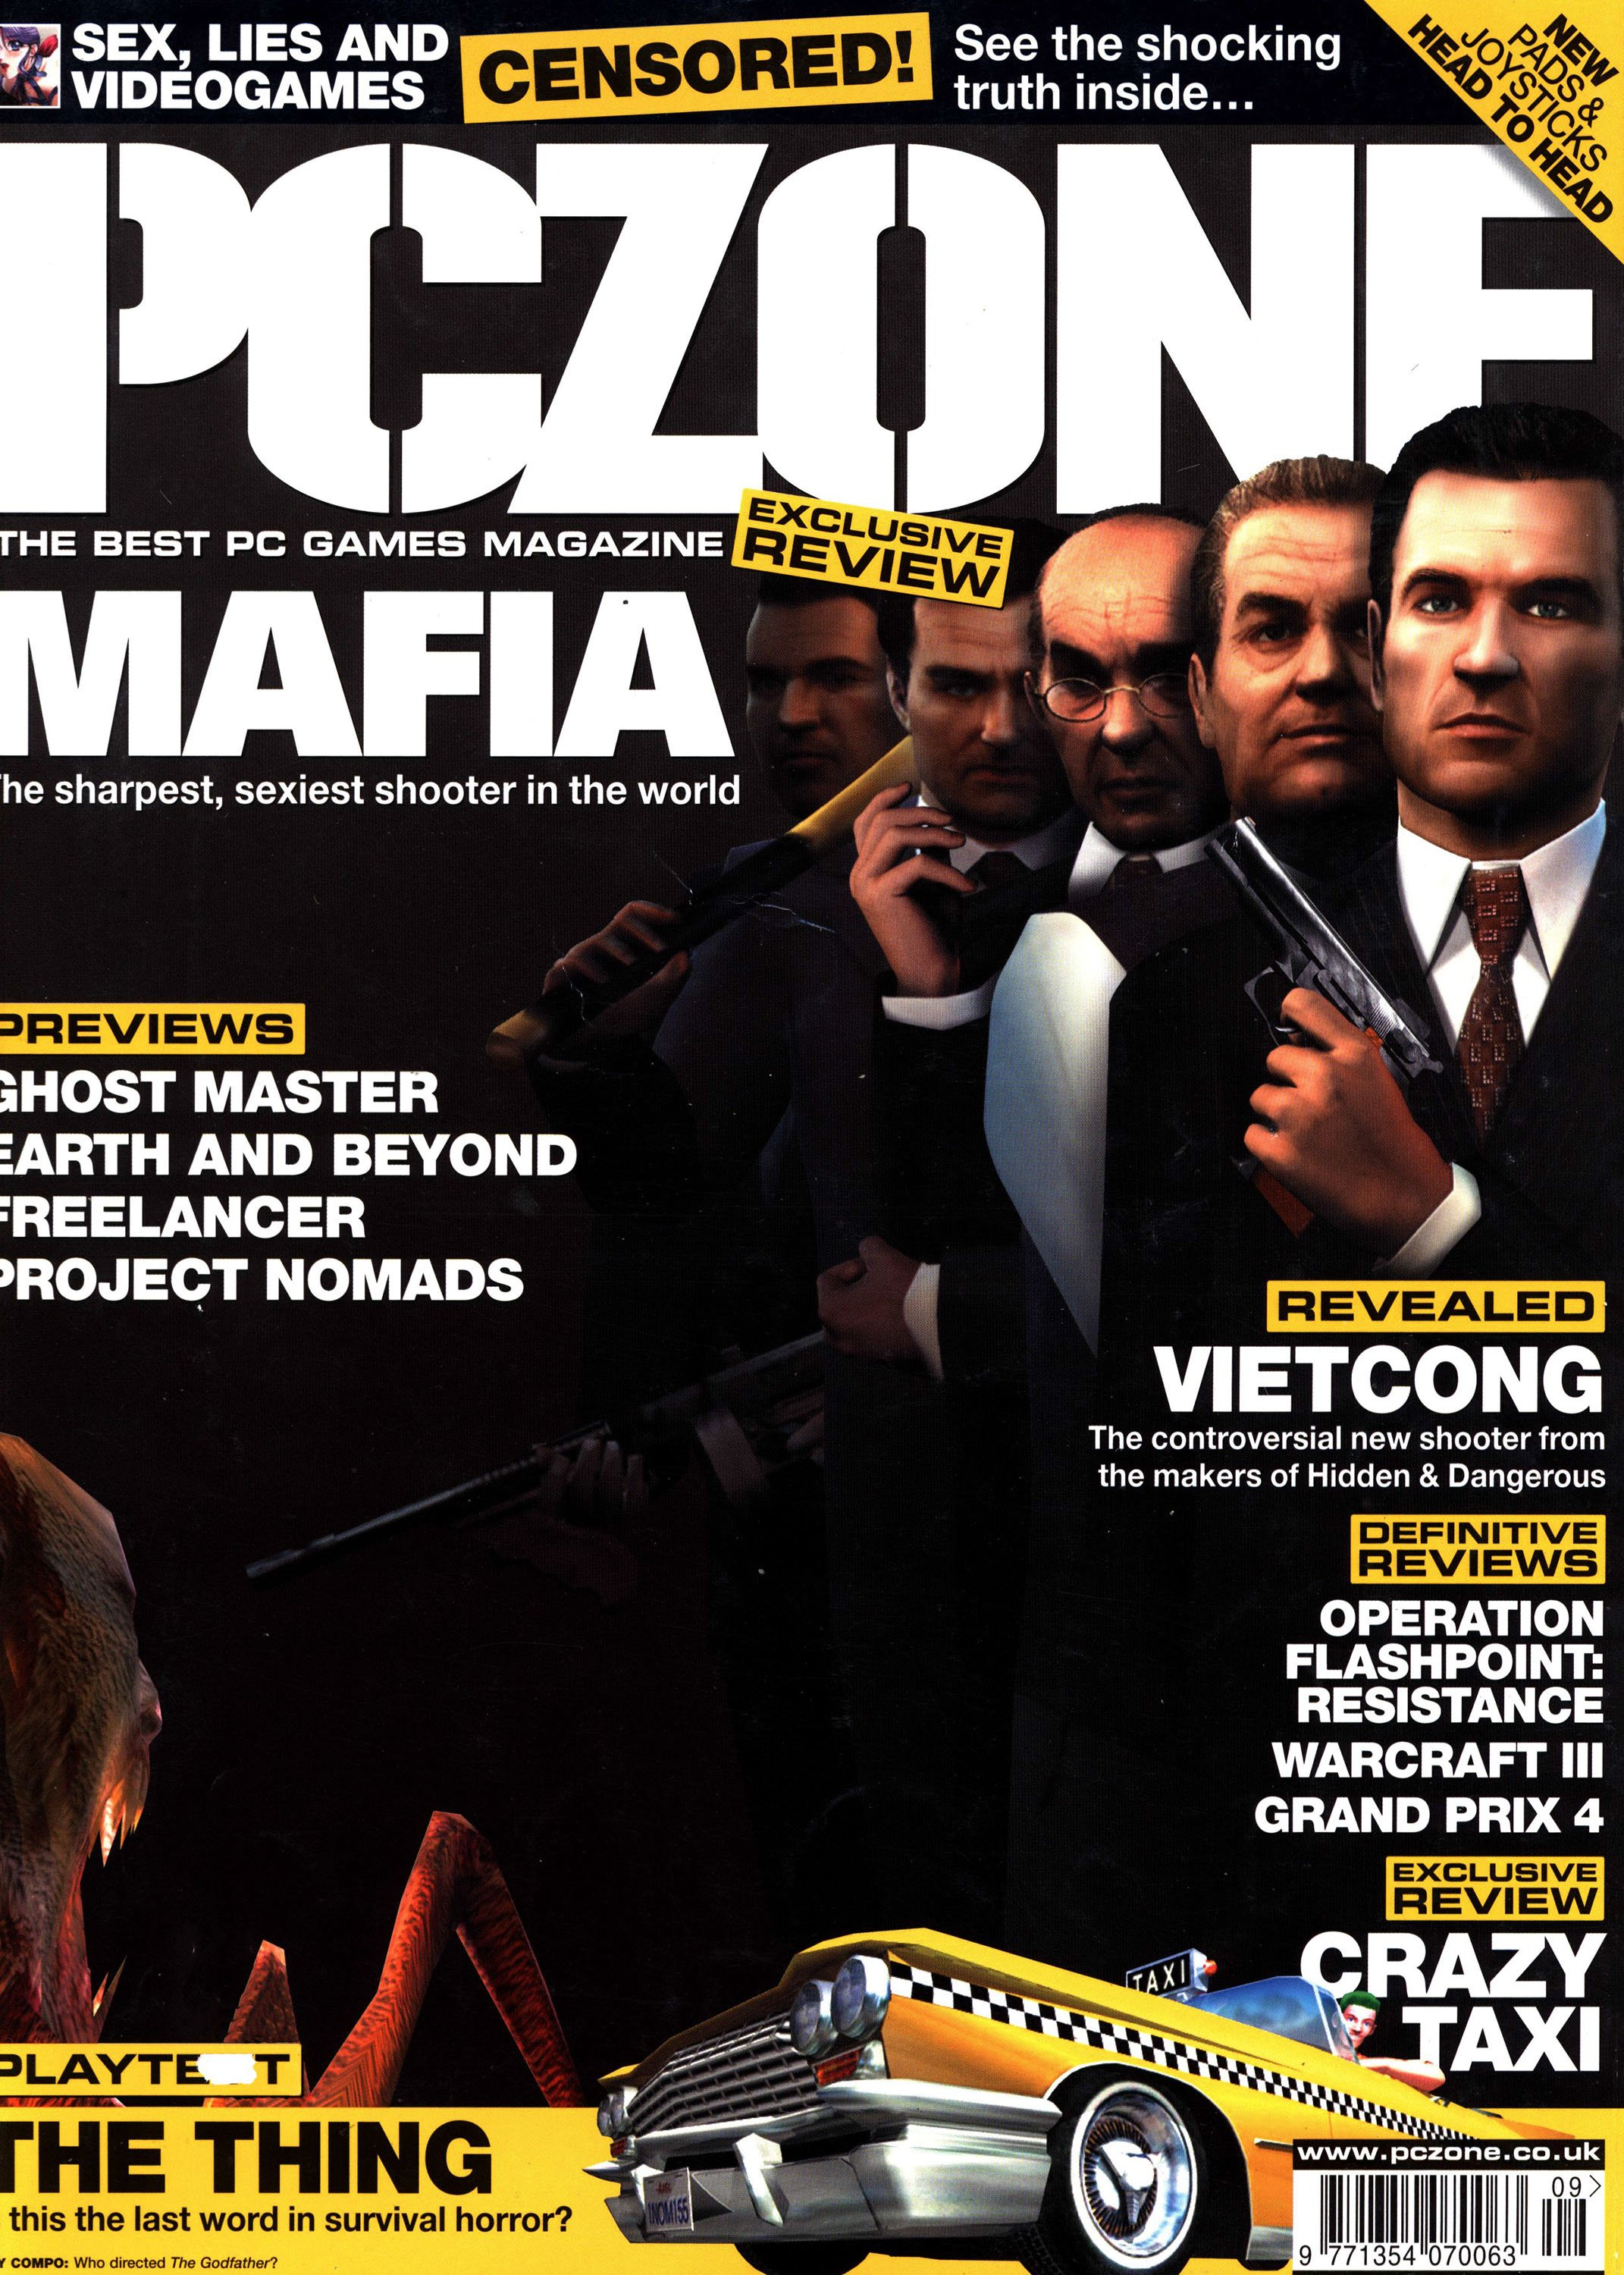 PC Zone Issue 119 (September 2002)